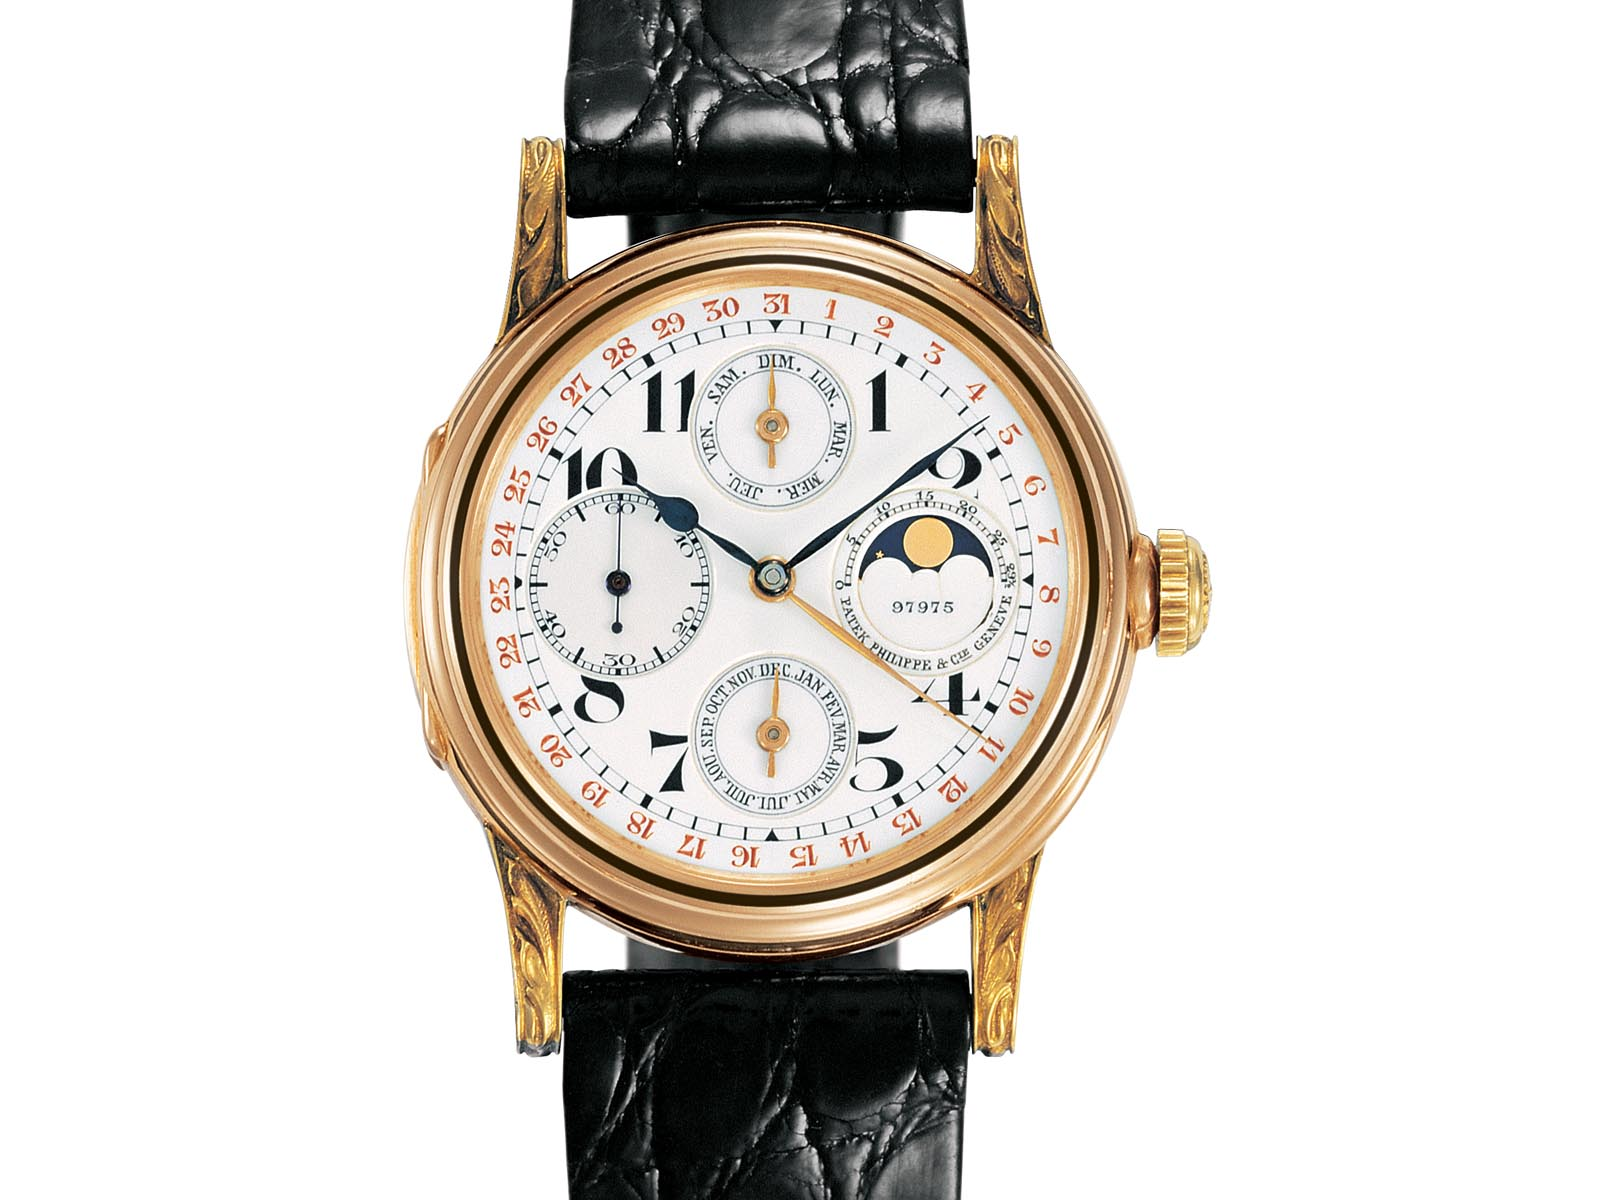 Patek Philippe First Perpetual Calendar Wristwatch